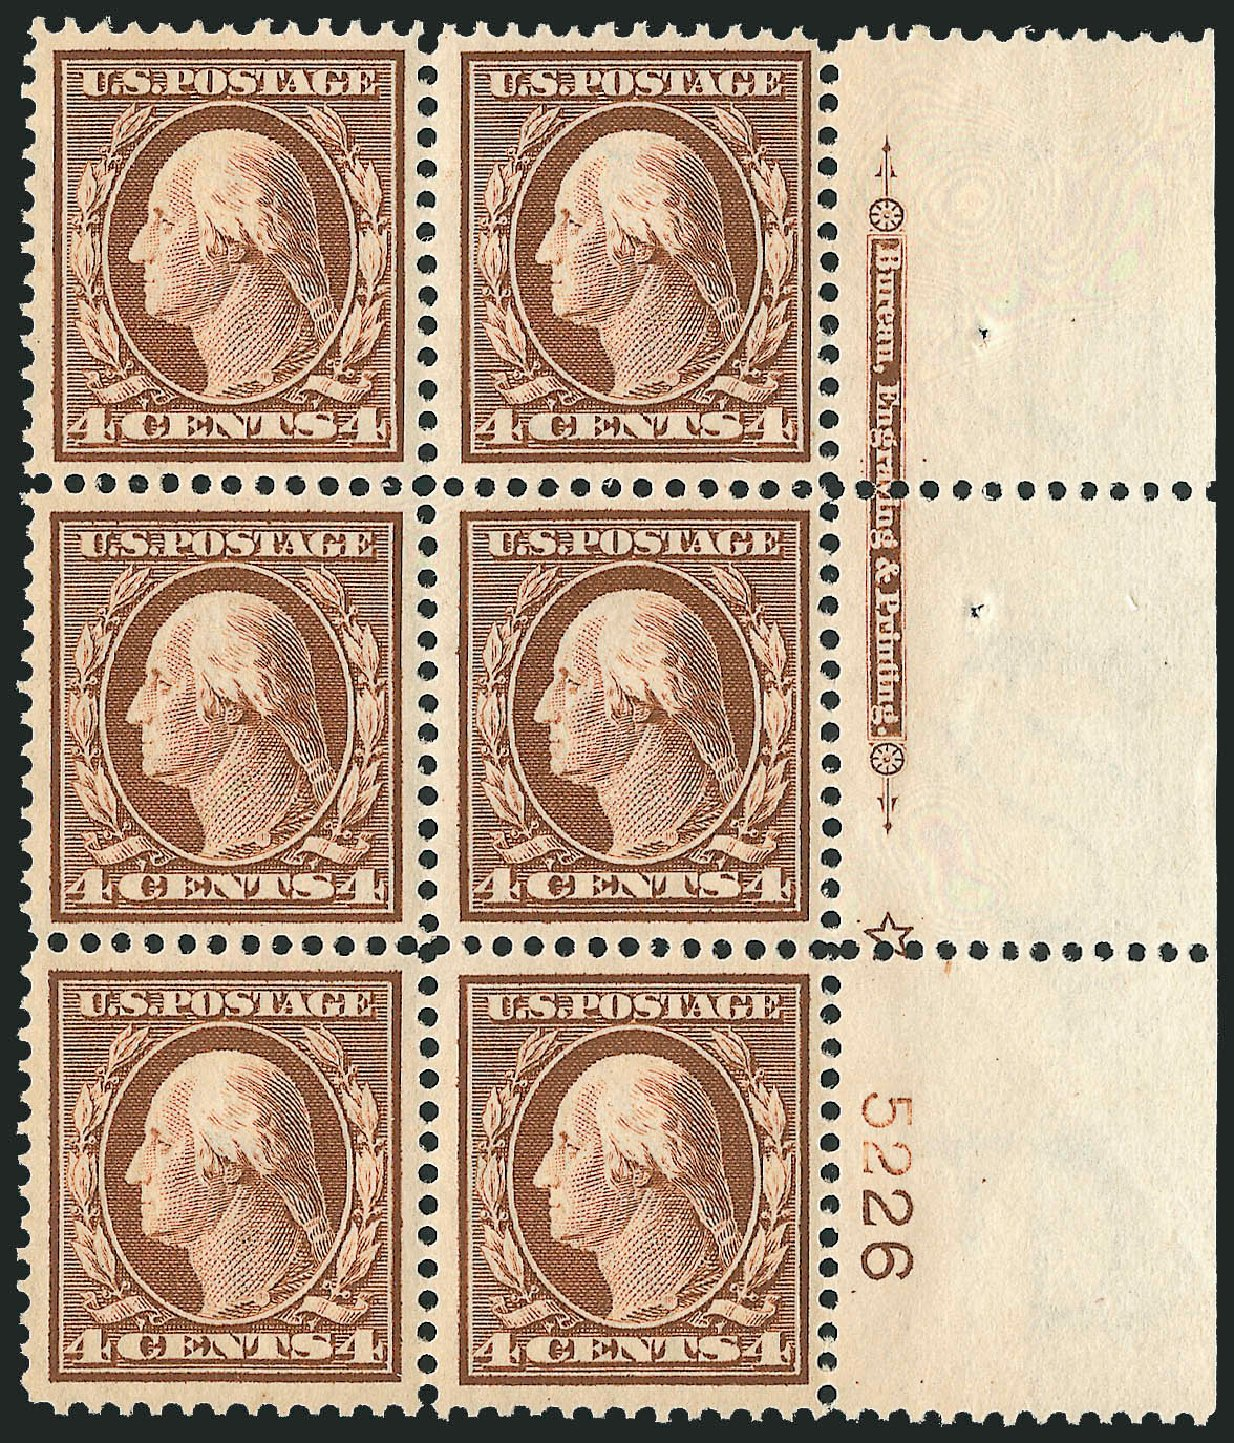 US Stamp Values Scott Catalogue #334 - 1908 4c Washington. Robert Siegel Auction Galleries, Mar 2014, Sale 1067, Lot 1415